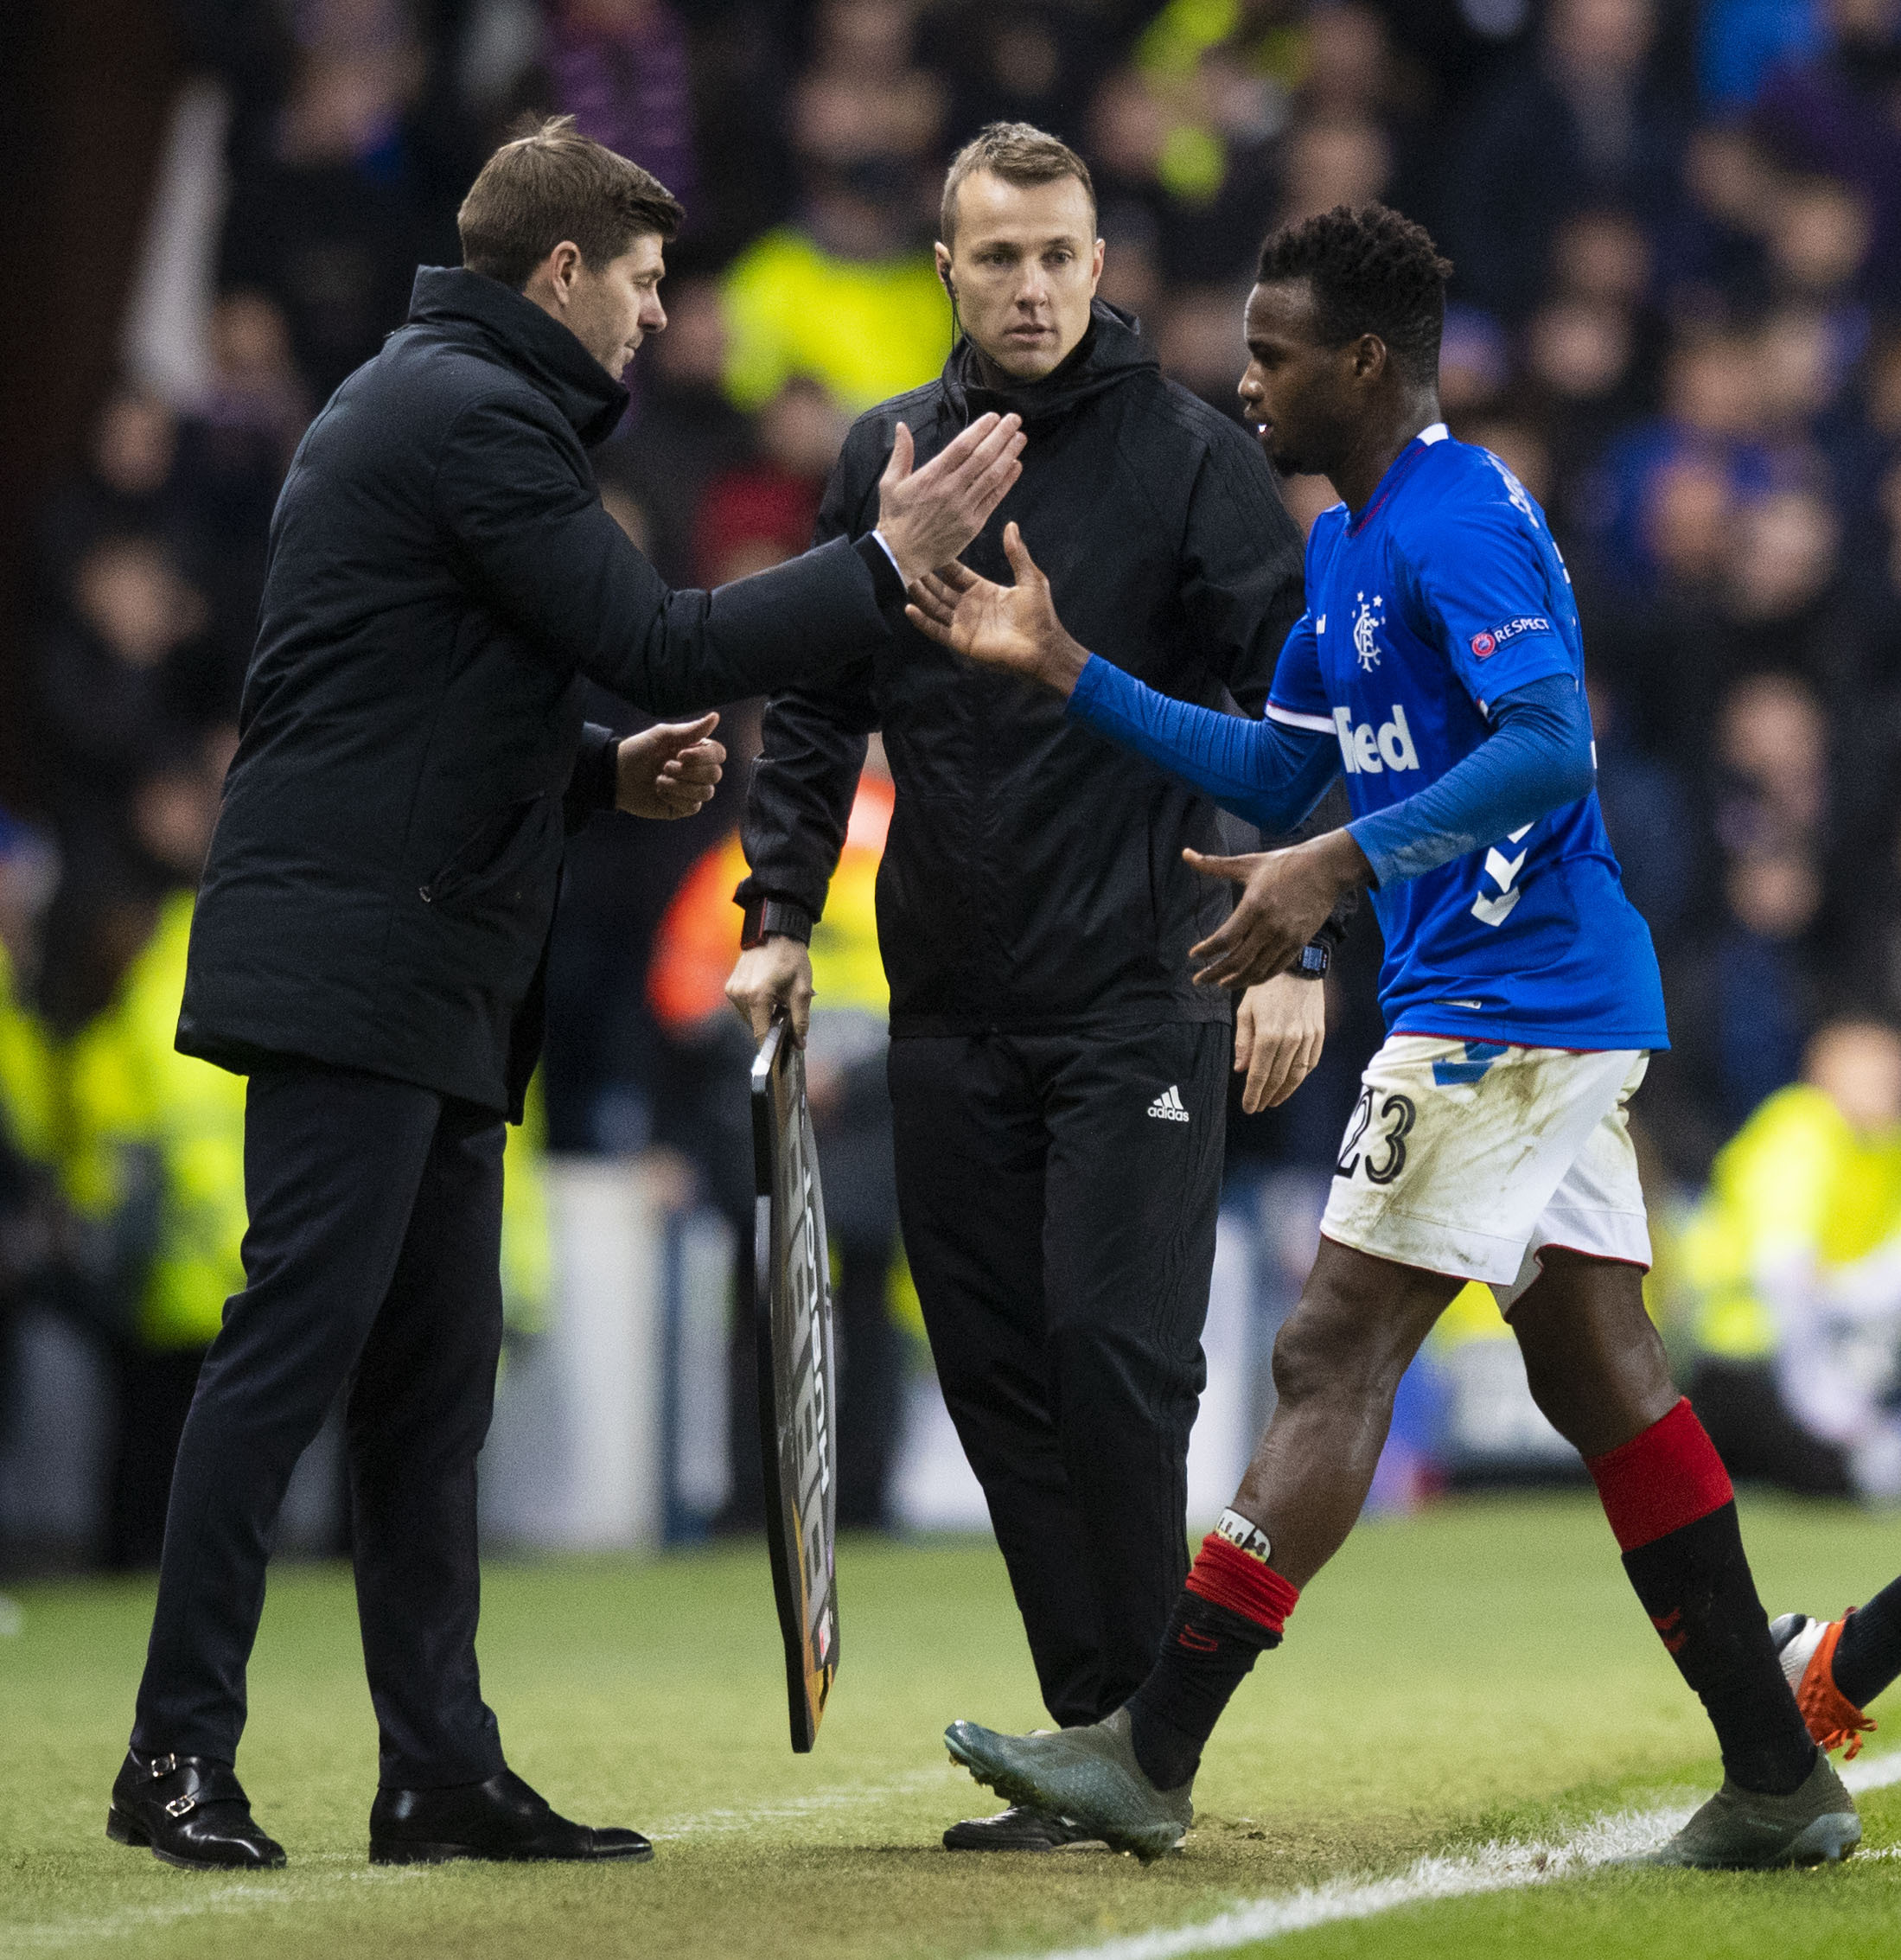 Steven Gerrard shakes hands with Lassana Coulibaly